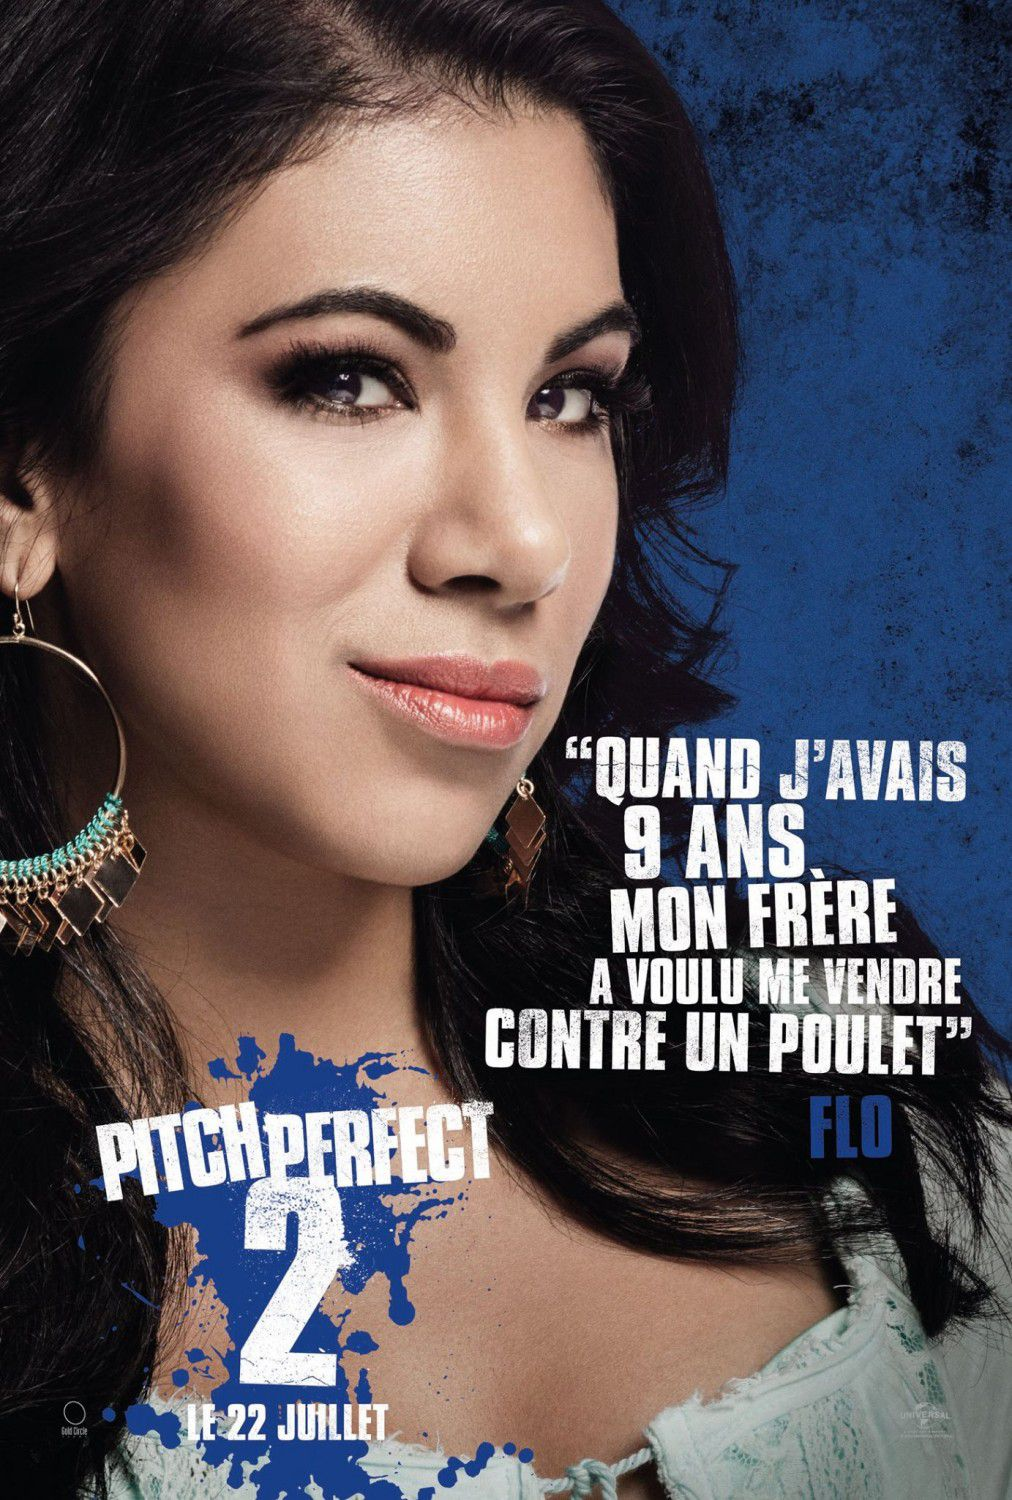 Pitch Perfect 2 - Voices 2 - Flo